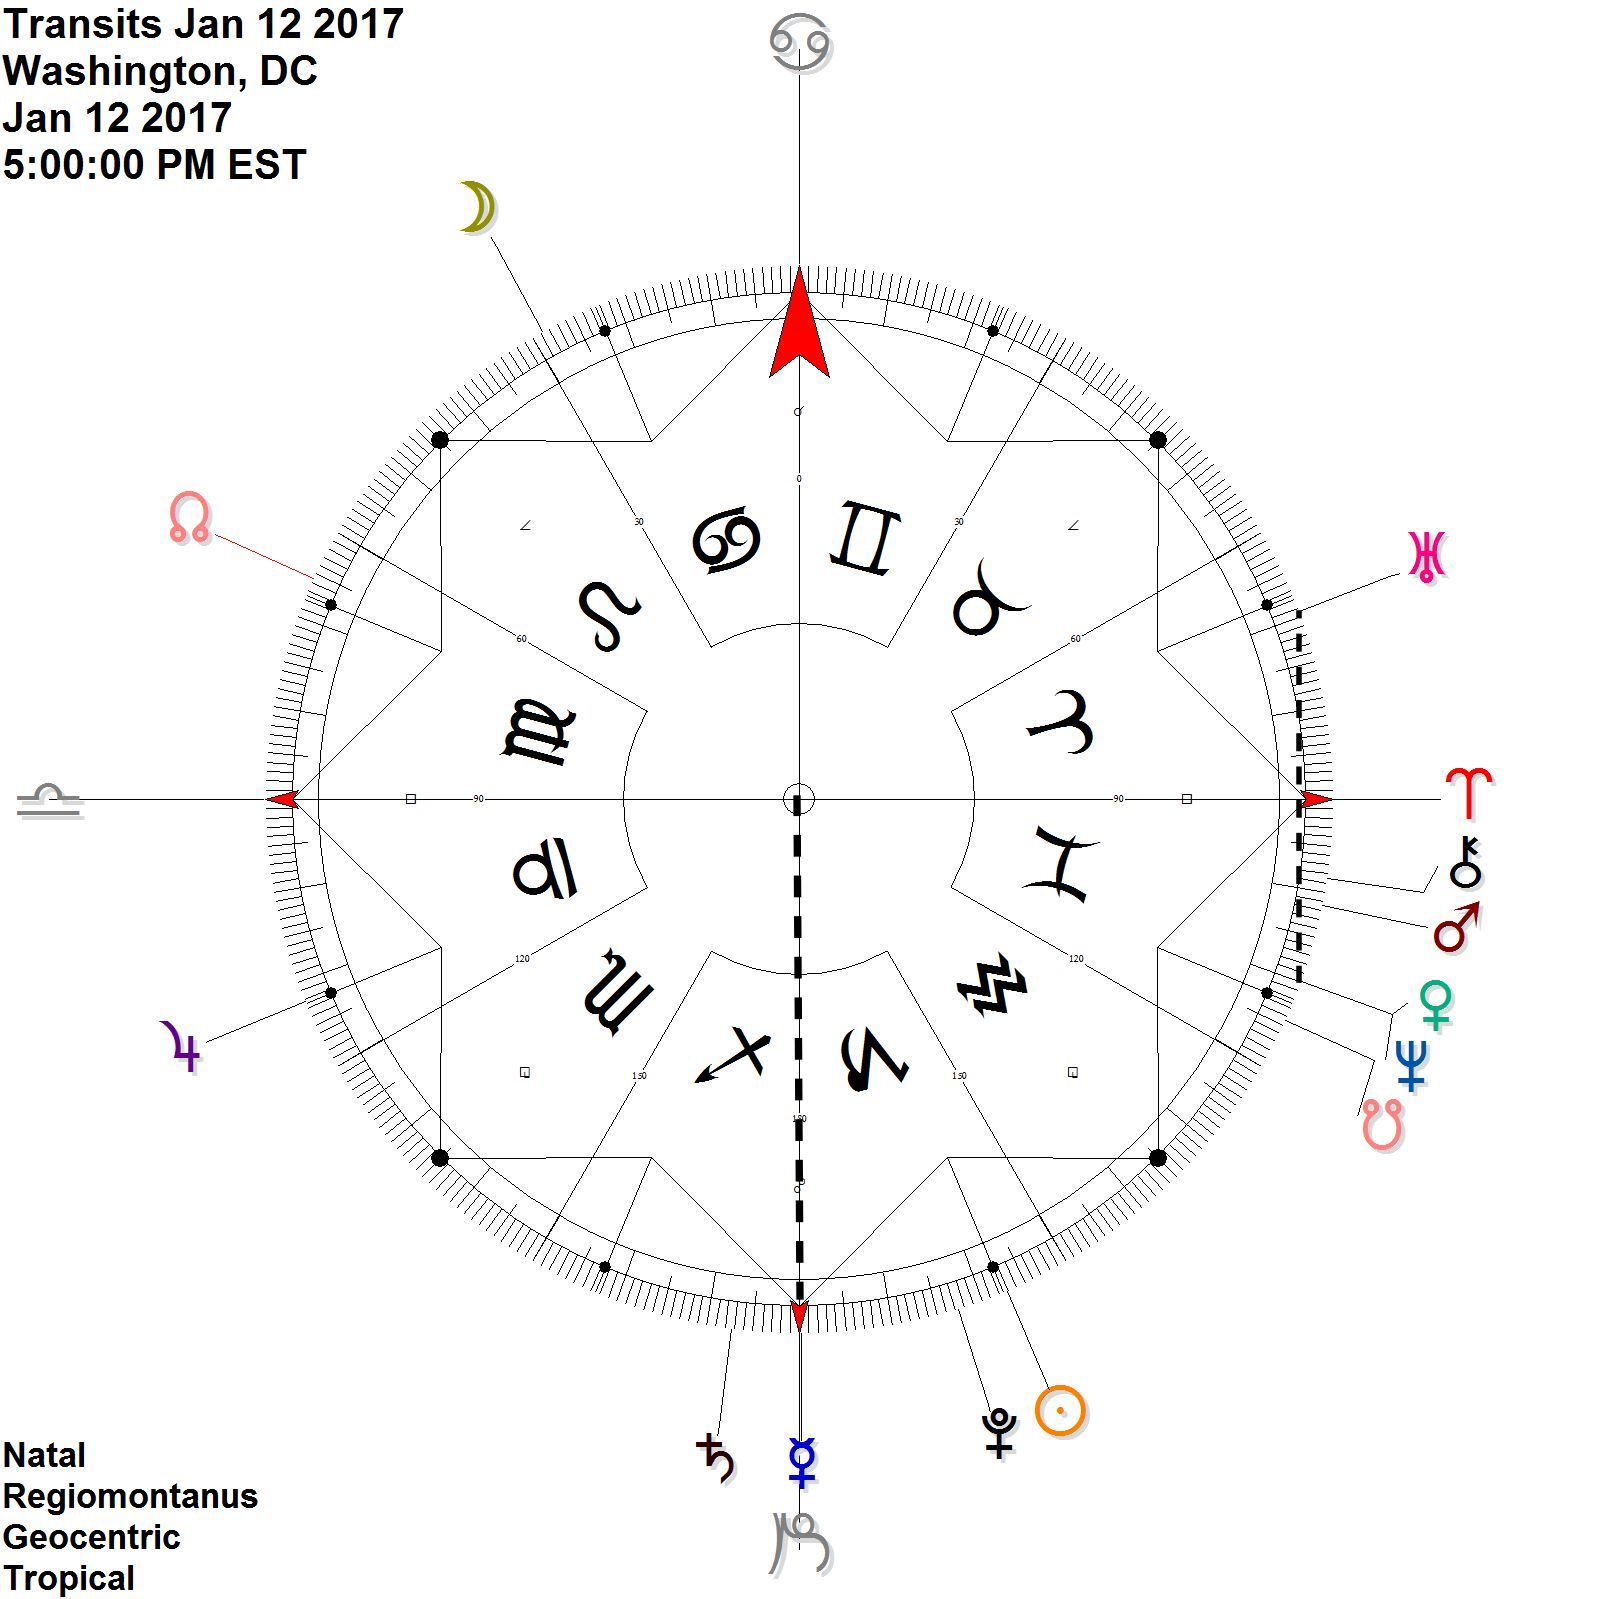 Shortly after the full moon at 23 CANCER:  Venus meets up with Neptune and reflects Uranus while Mercury stands on the cardinal axis (again)